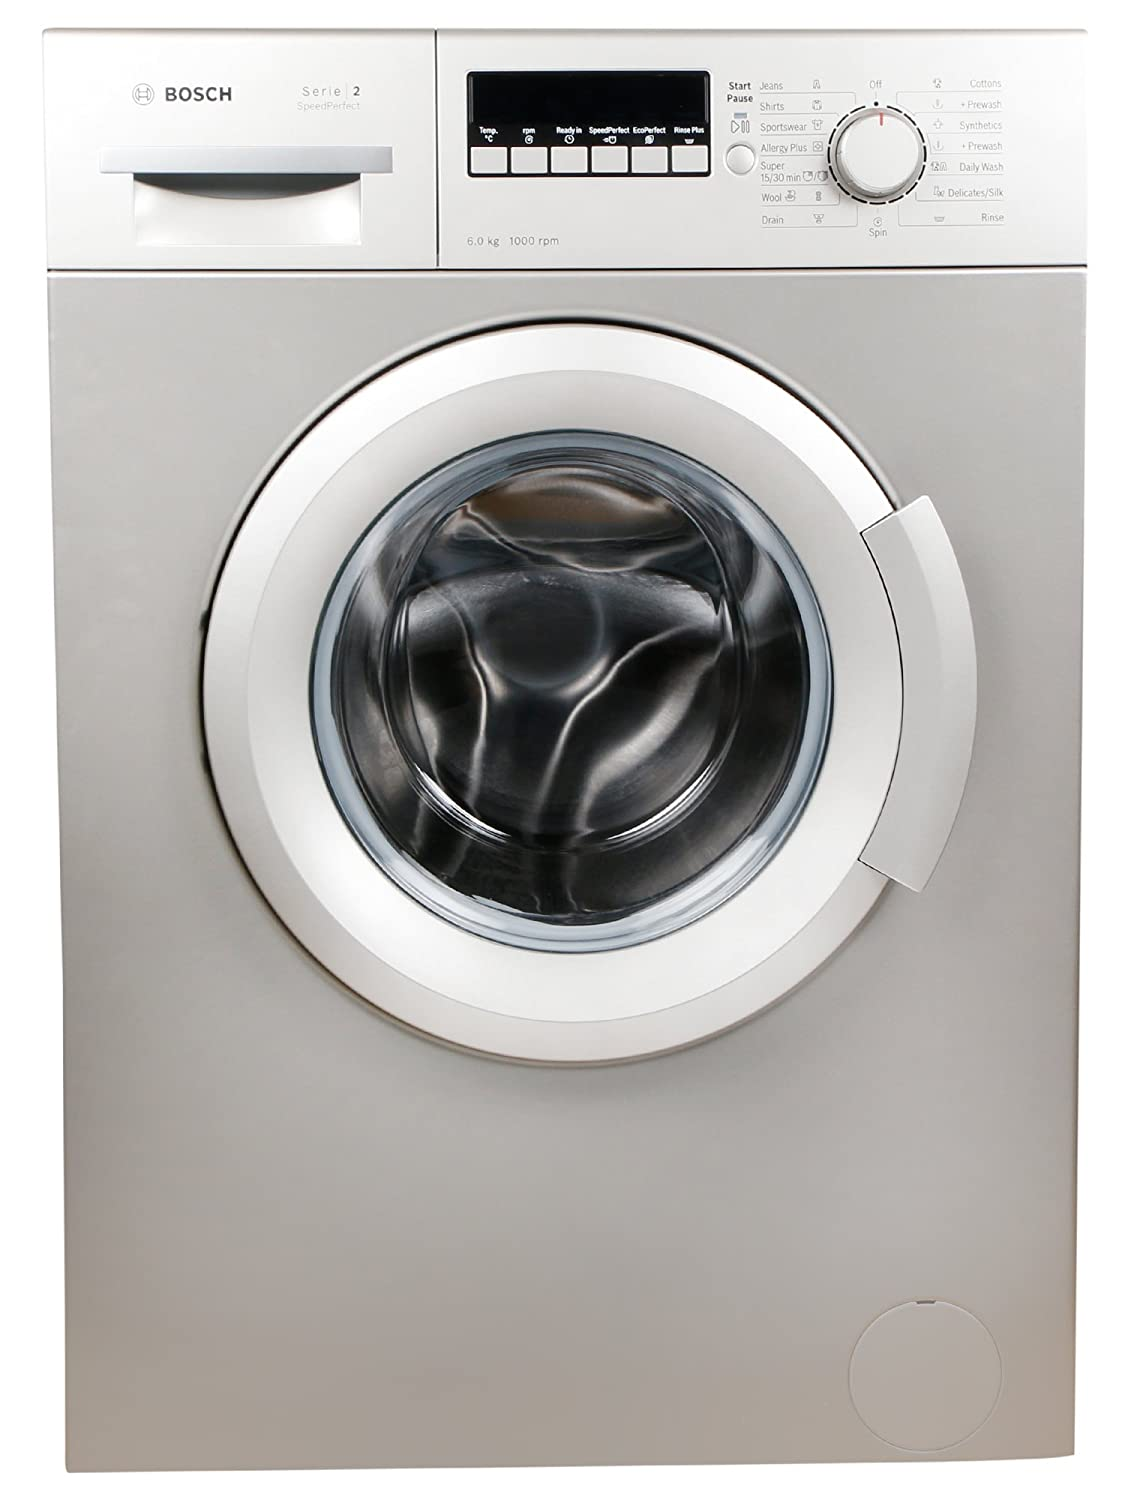 Bosch washing machines: brand features, a review of popular models, tips for buyers 44